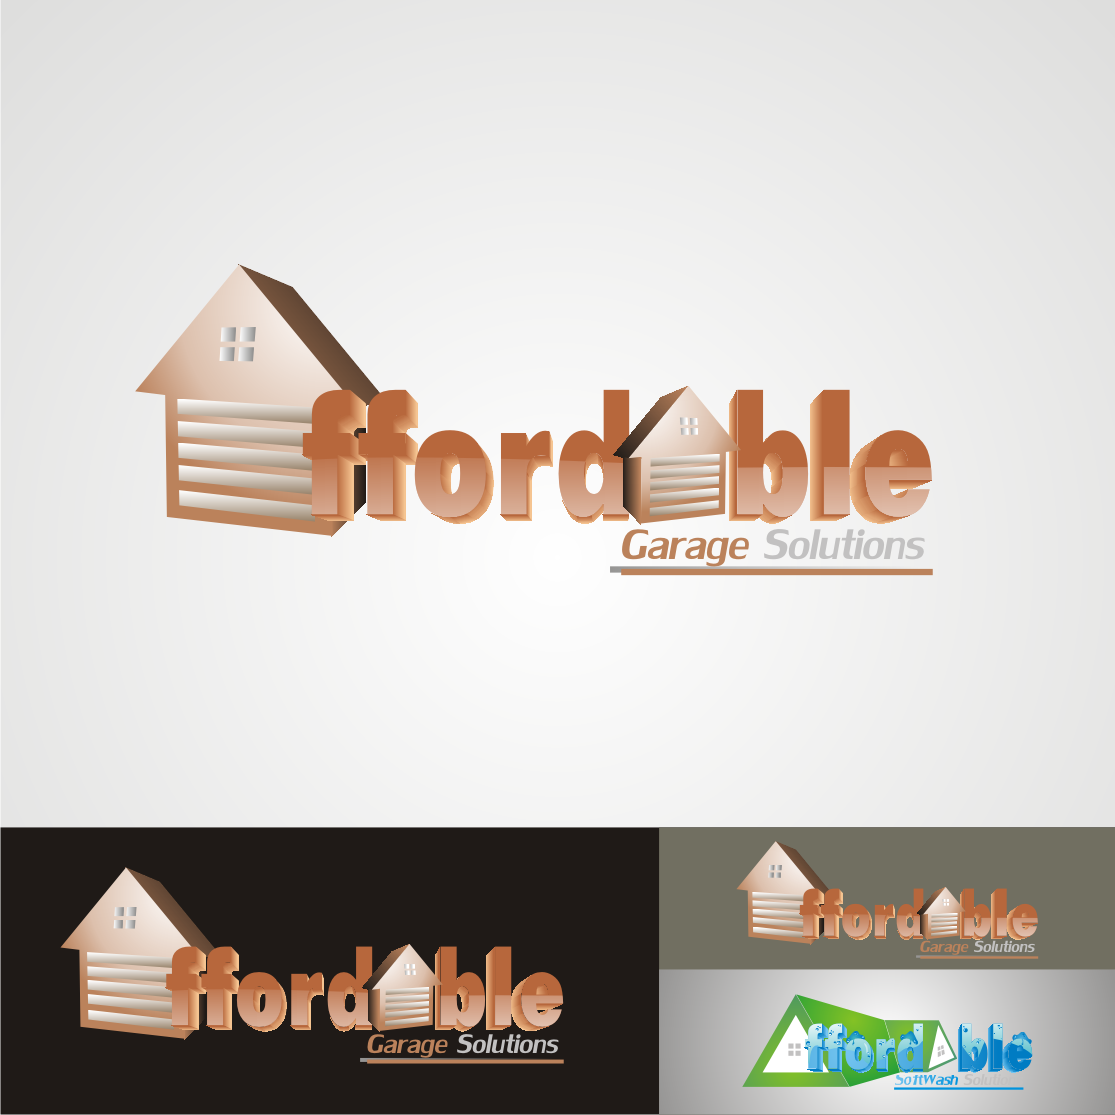 Logo Design by Nthus Nthis - Entry No. 9 in the Logo Design Contest Captivating Logo Design for affordable garage solutions.